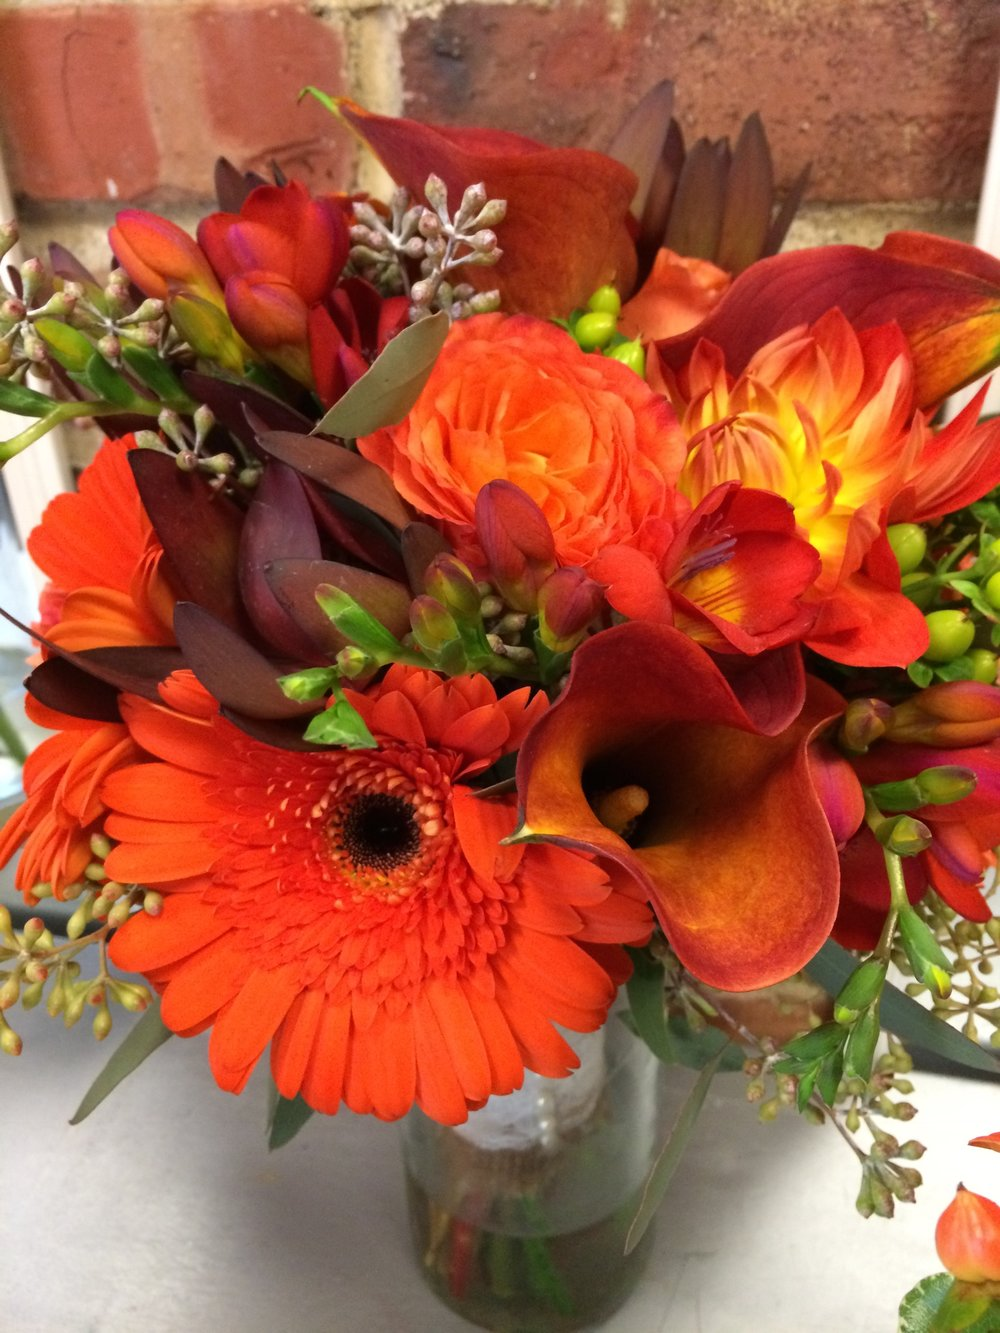 74. Vibrant Summer Bridal Bouquet in Shades of Orange